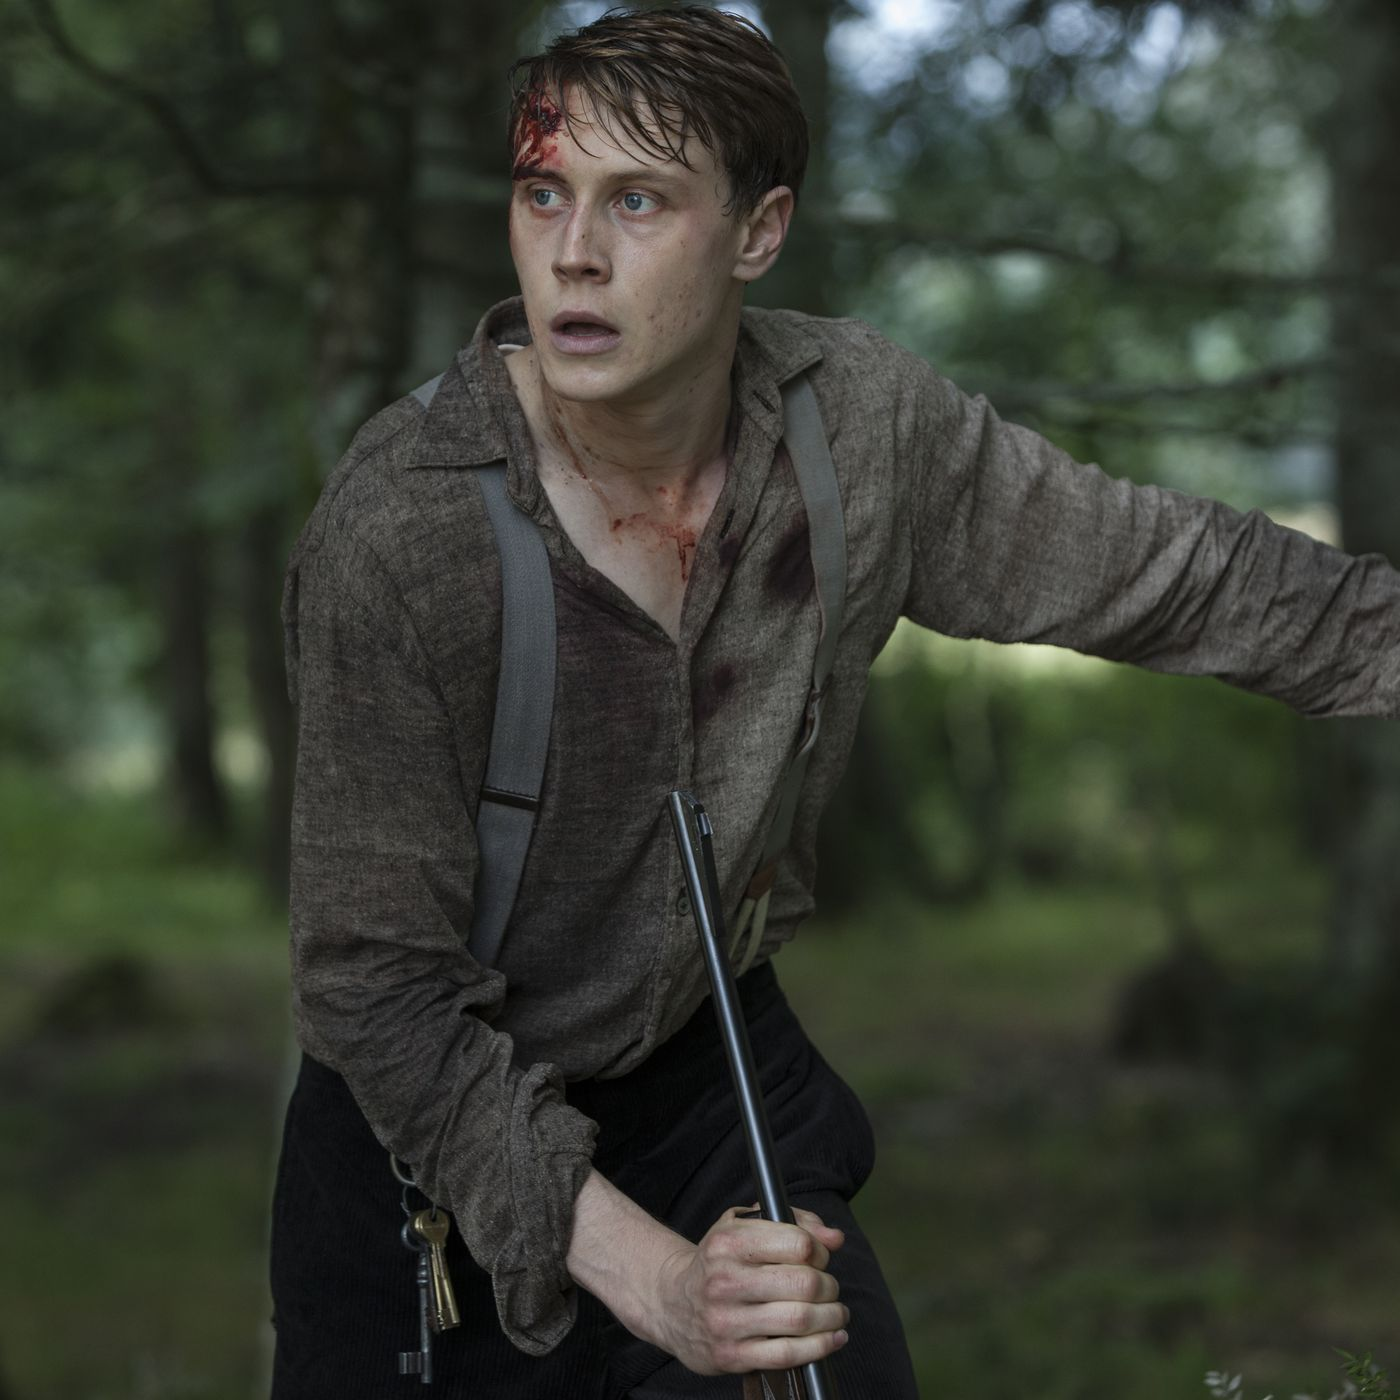 Marrowbone is the kind of horror film that gets better with